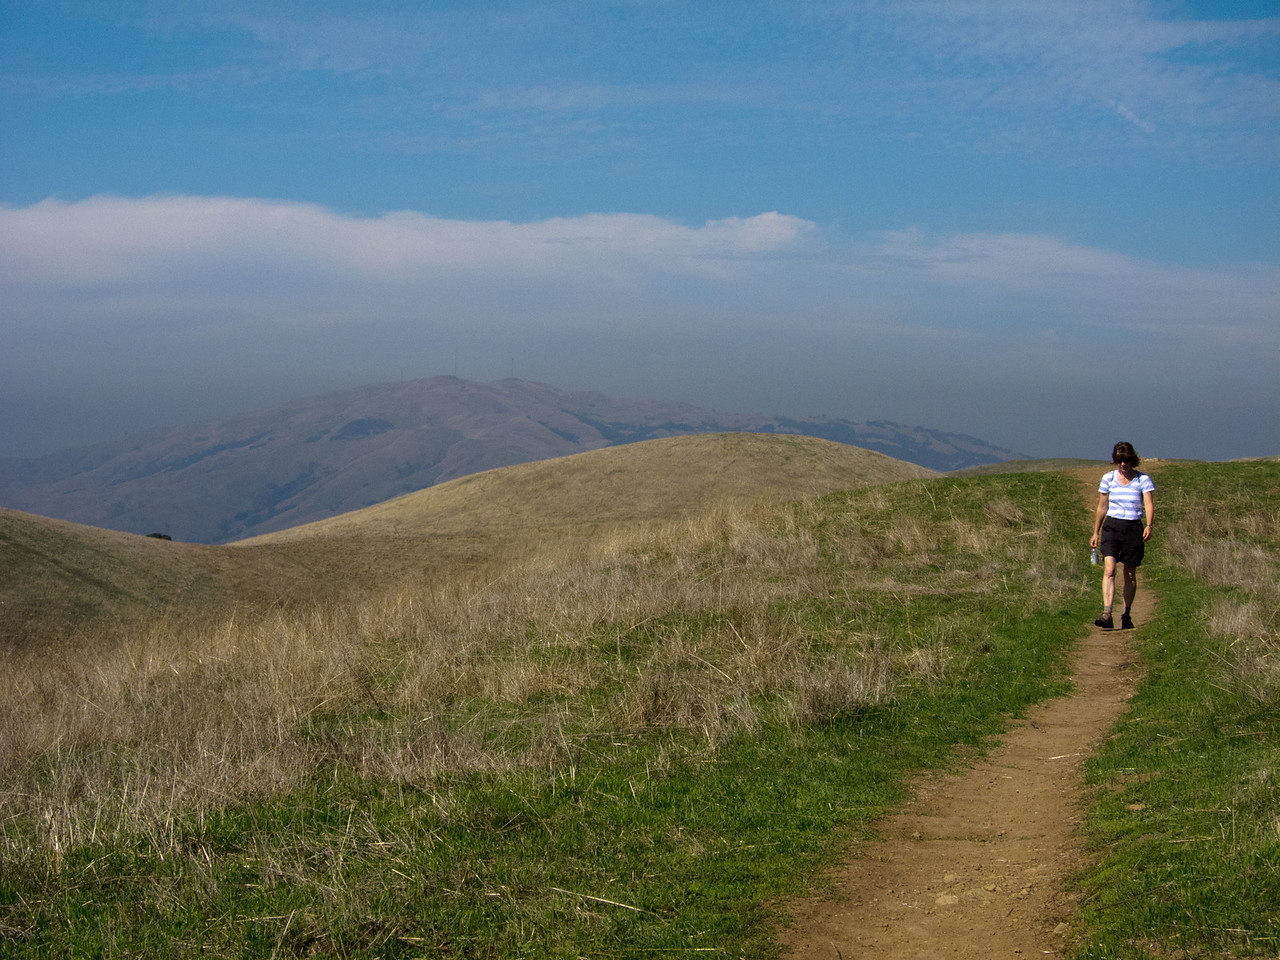 Looking north towards Mission Peak in the distance.